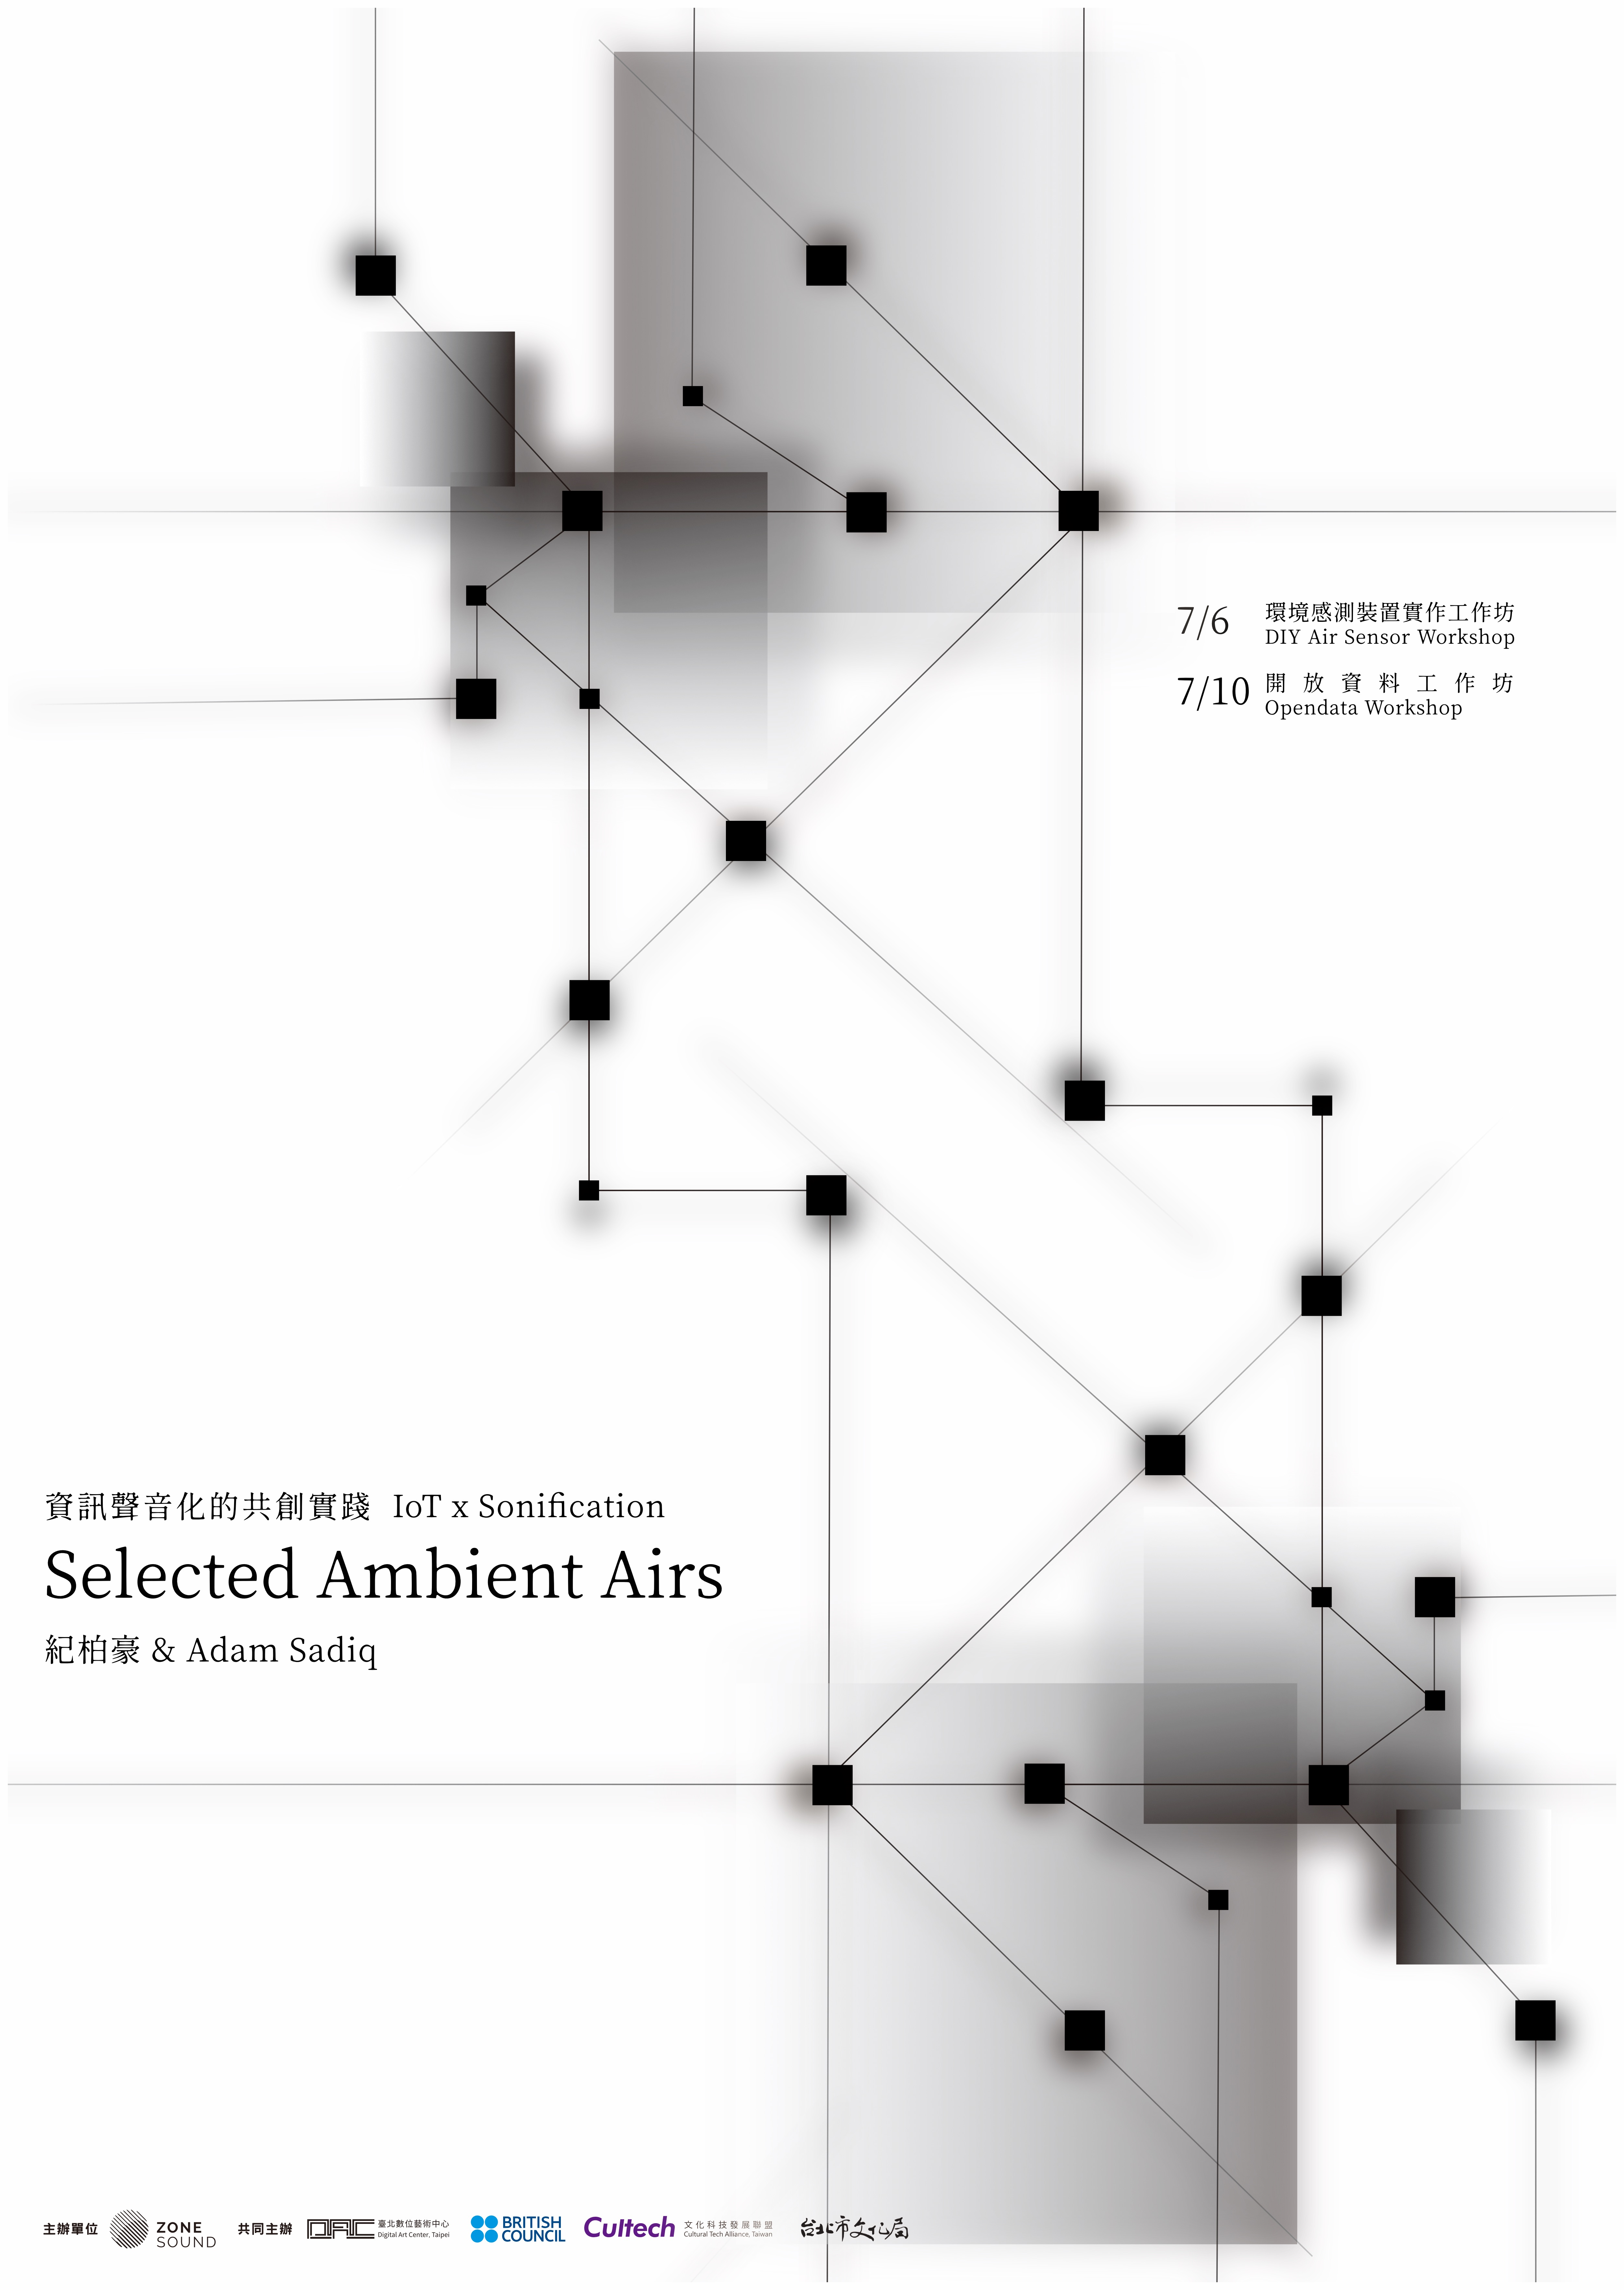 Selected Ambient Airs